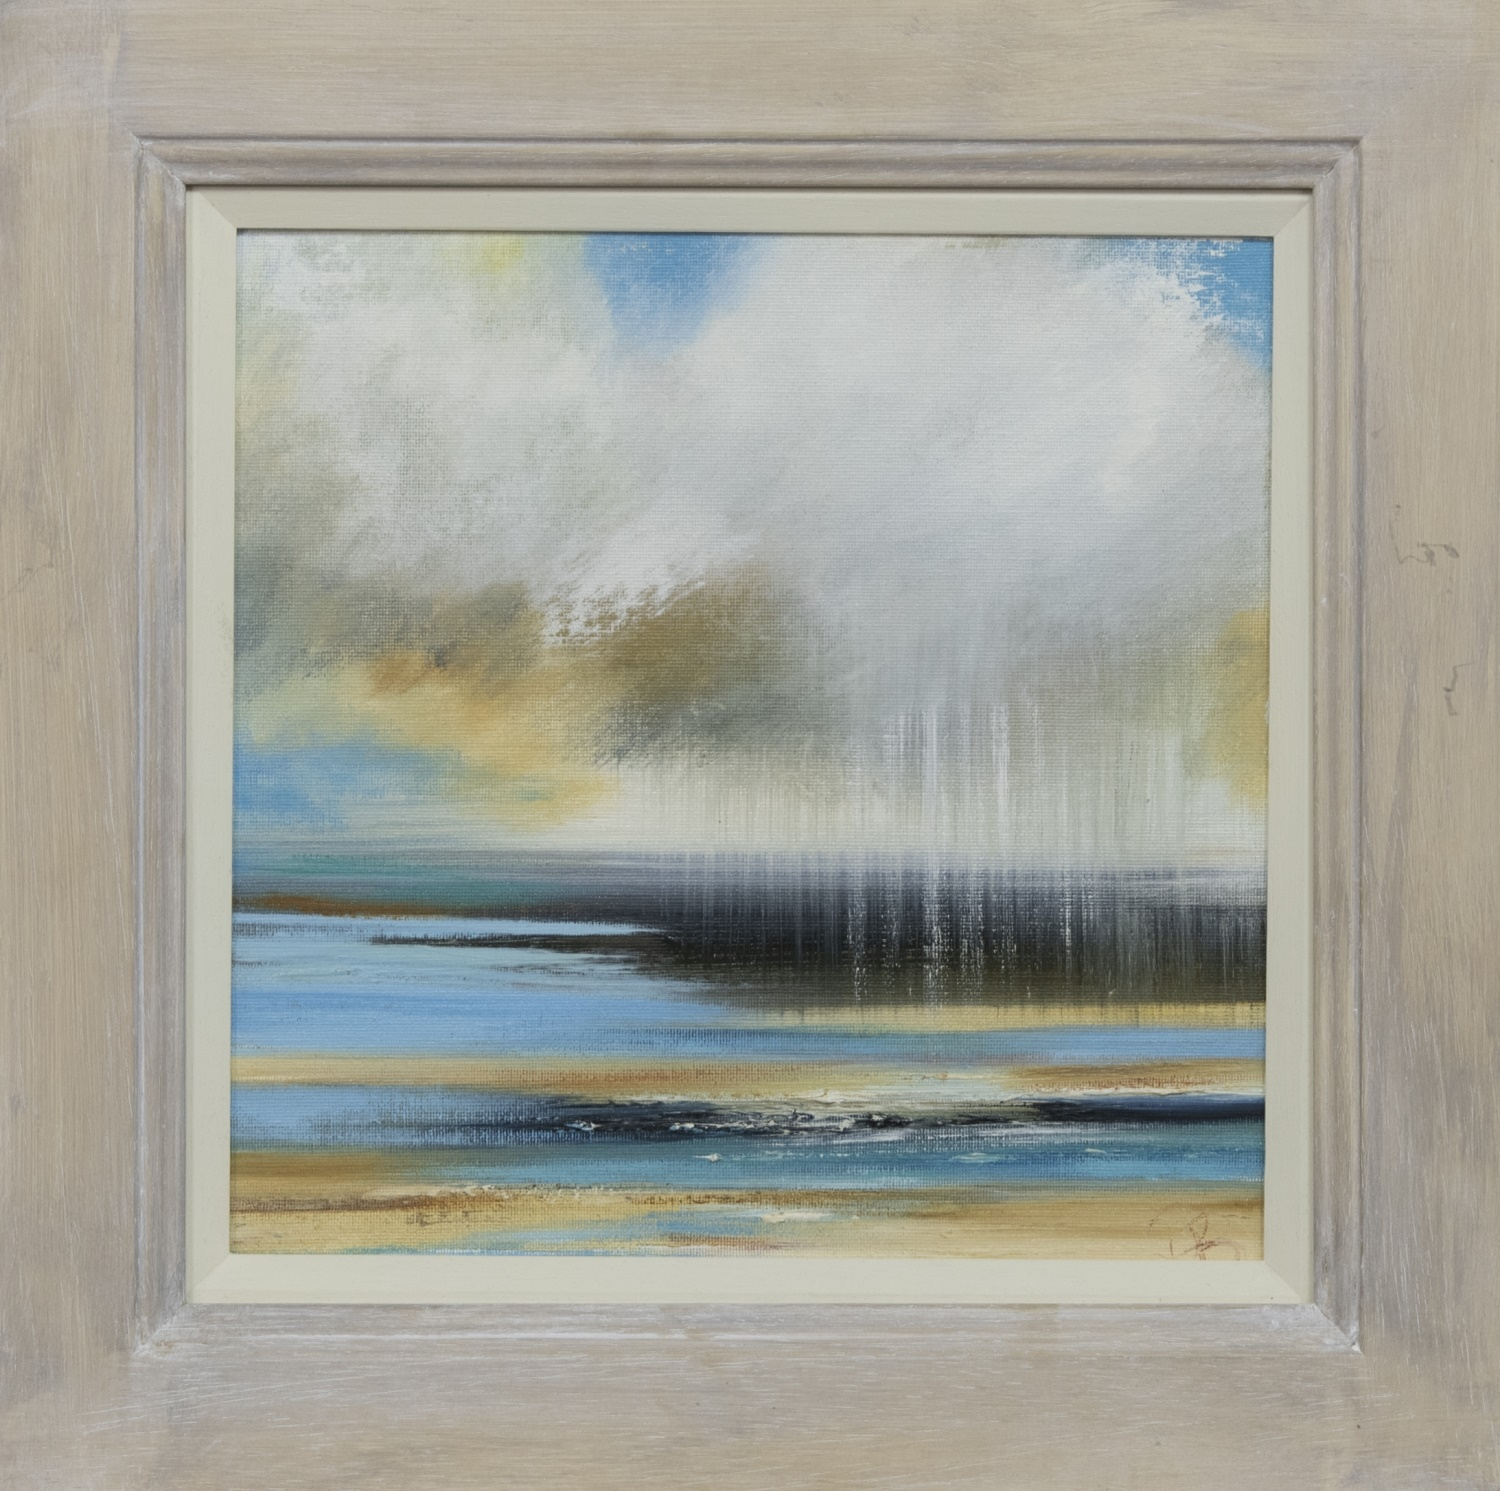 TIDE INCOMING, AN OIL BY ROSANNE BARR